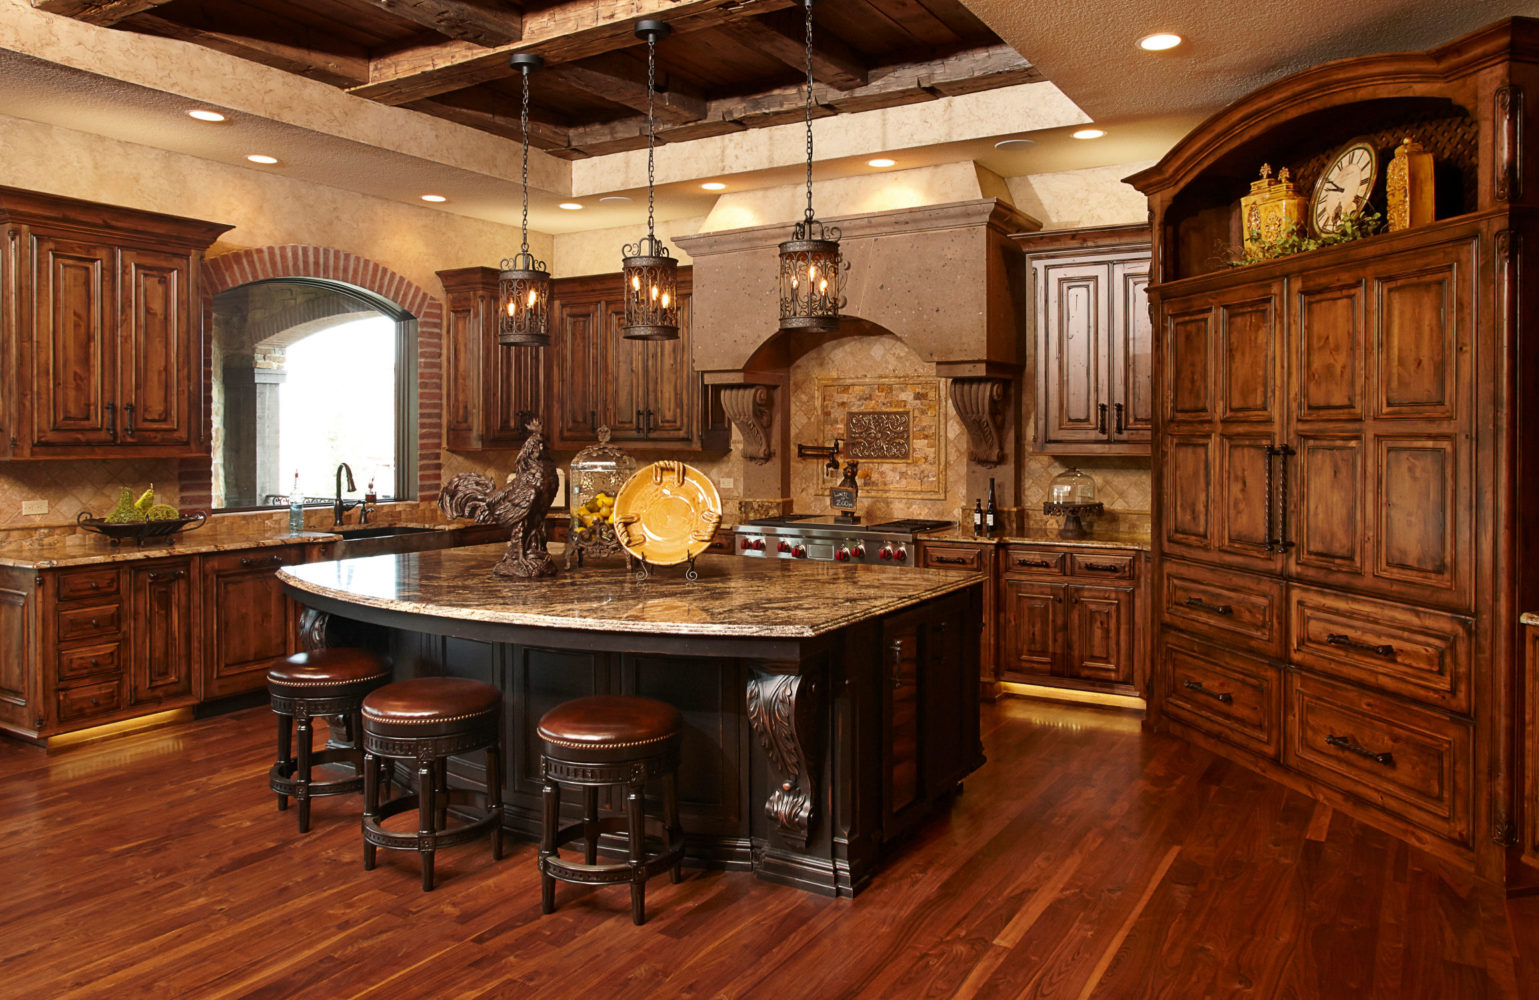 Rustic Kitchen using Knotty Alder